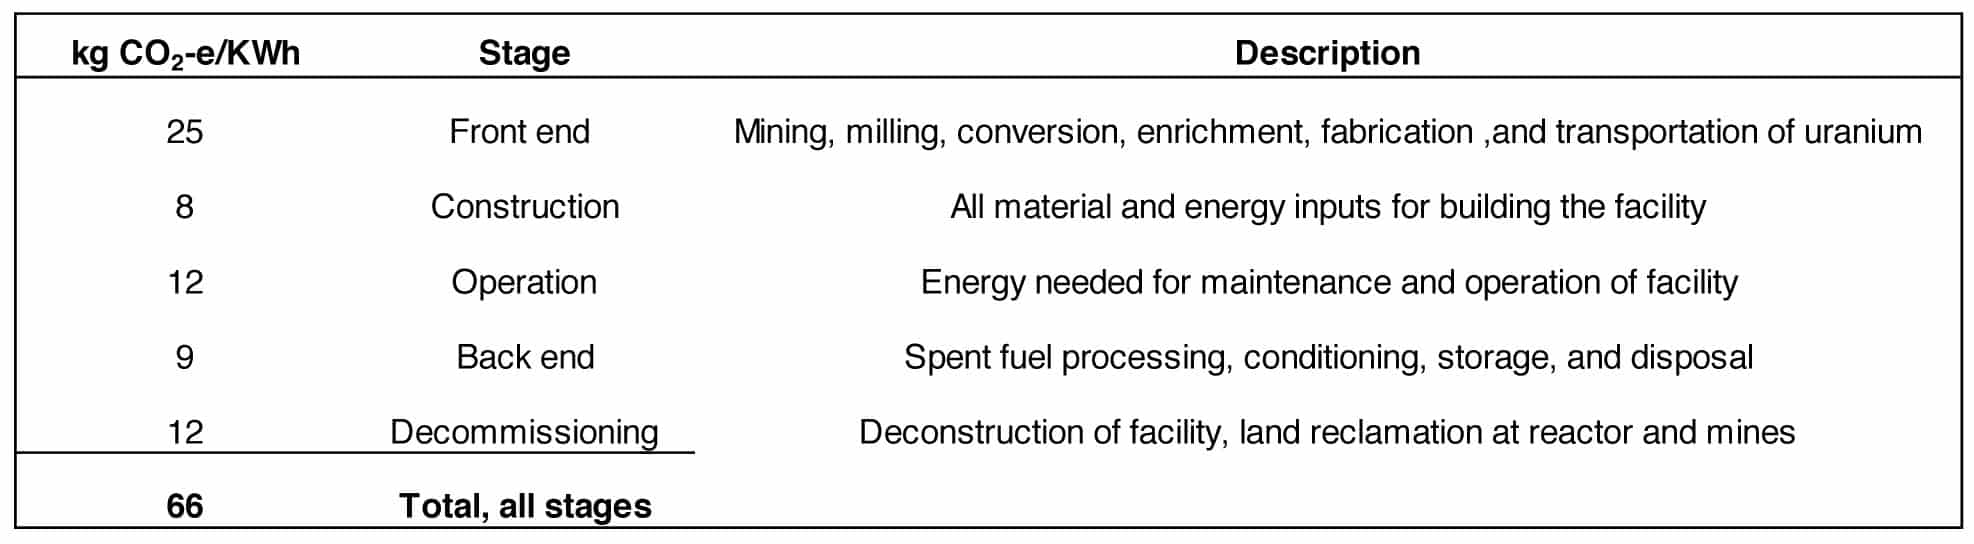 Table: Carbon emissions for five major stages of the nuclear life cycle